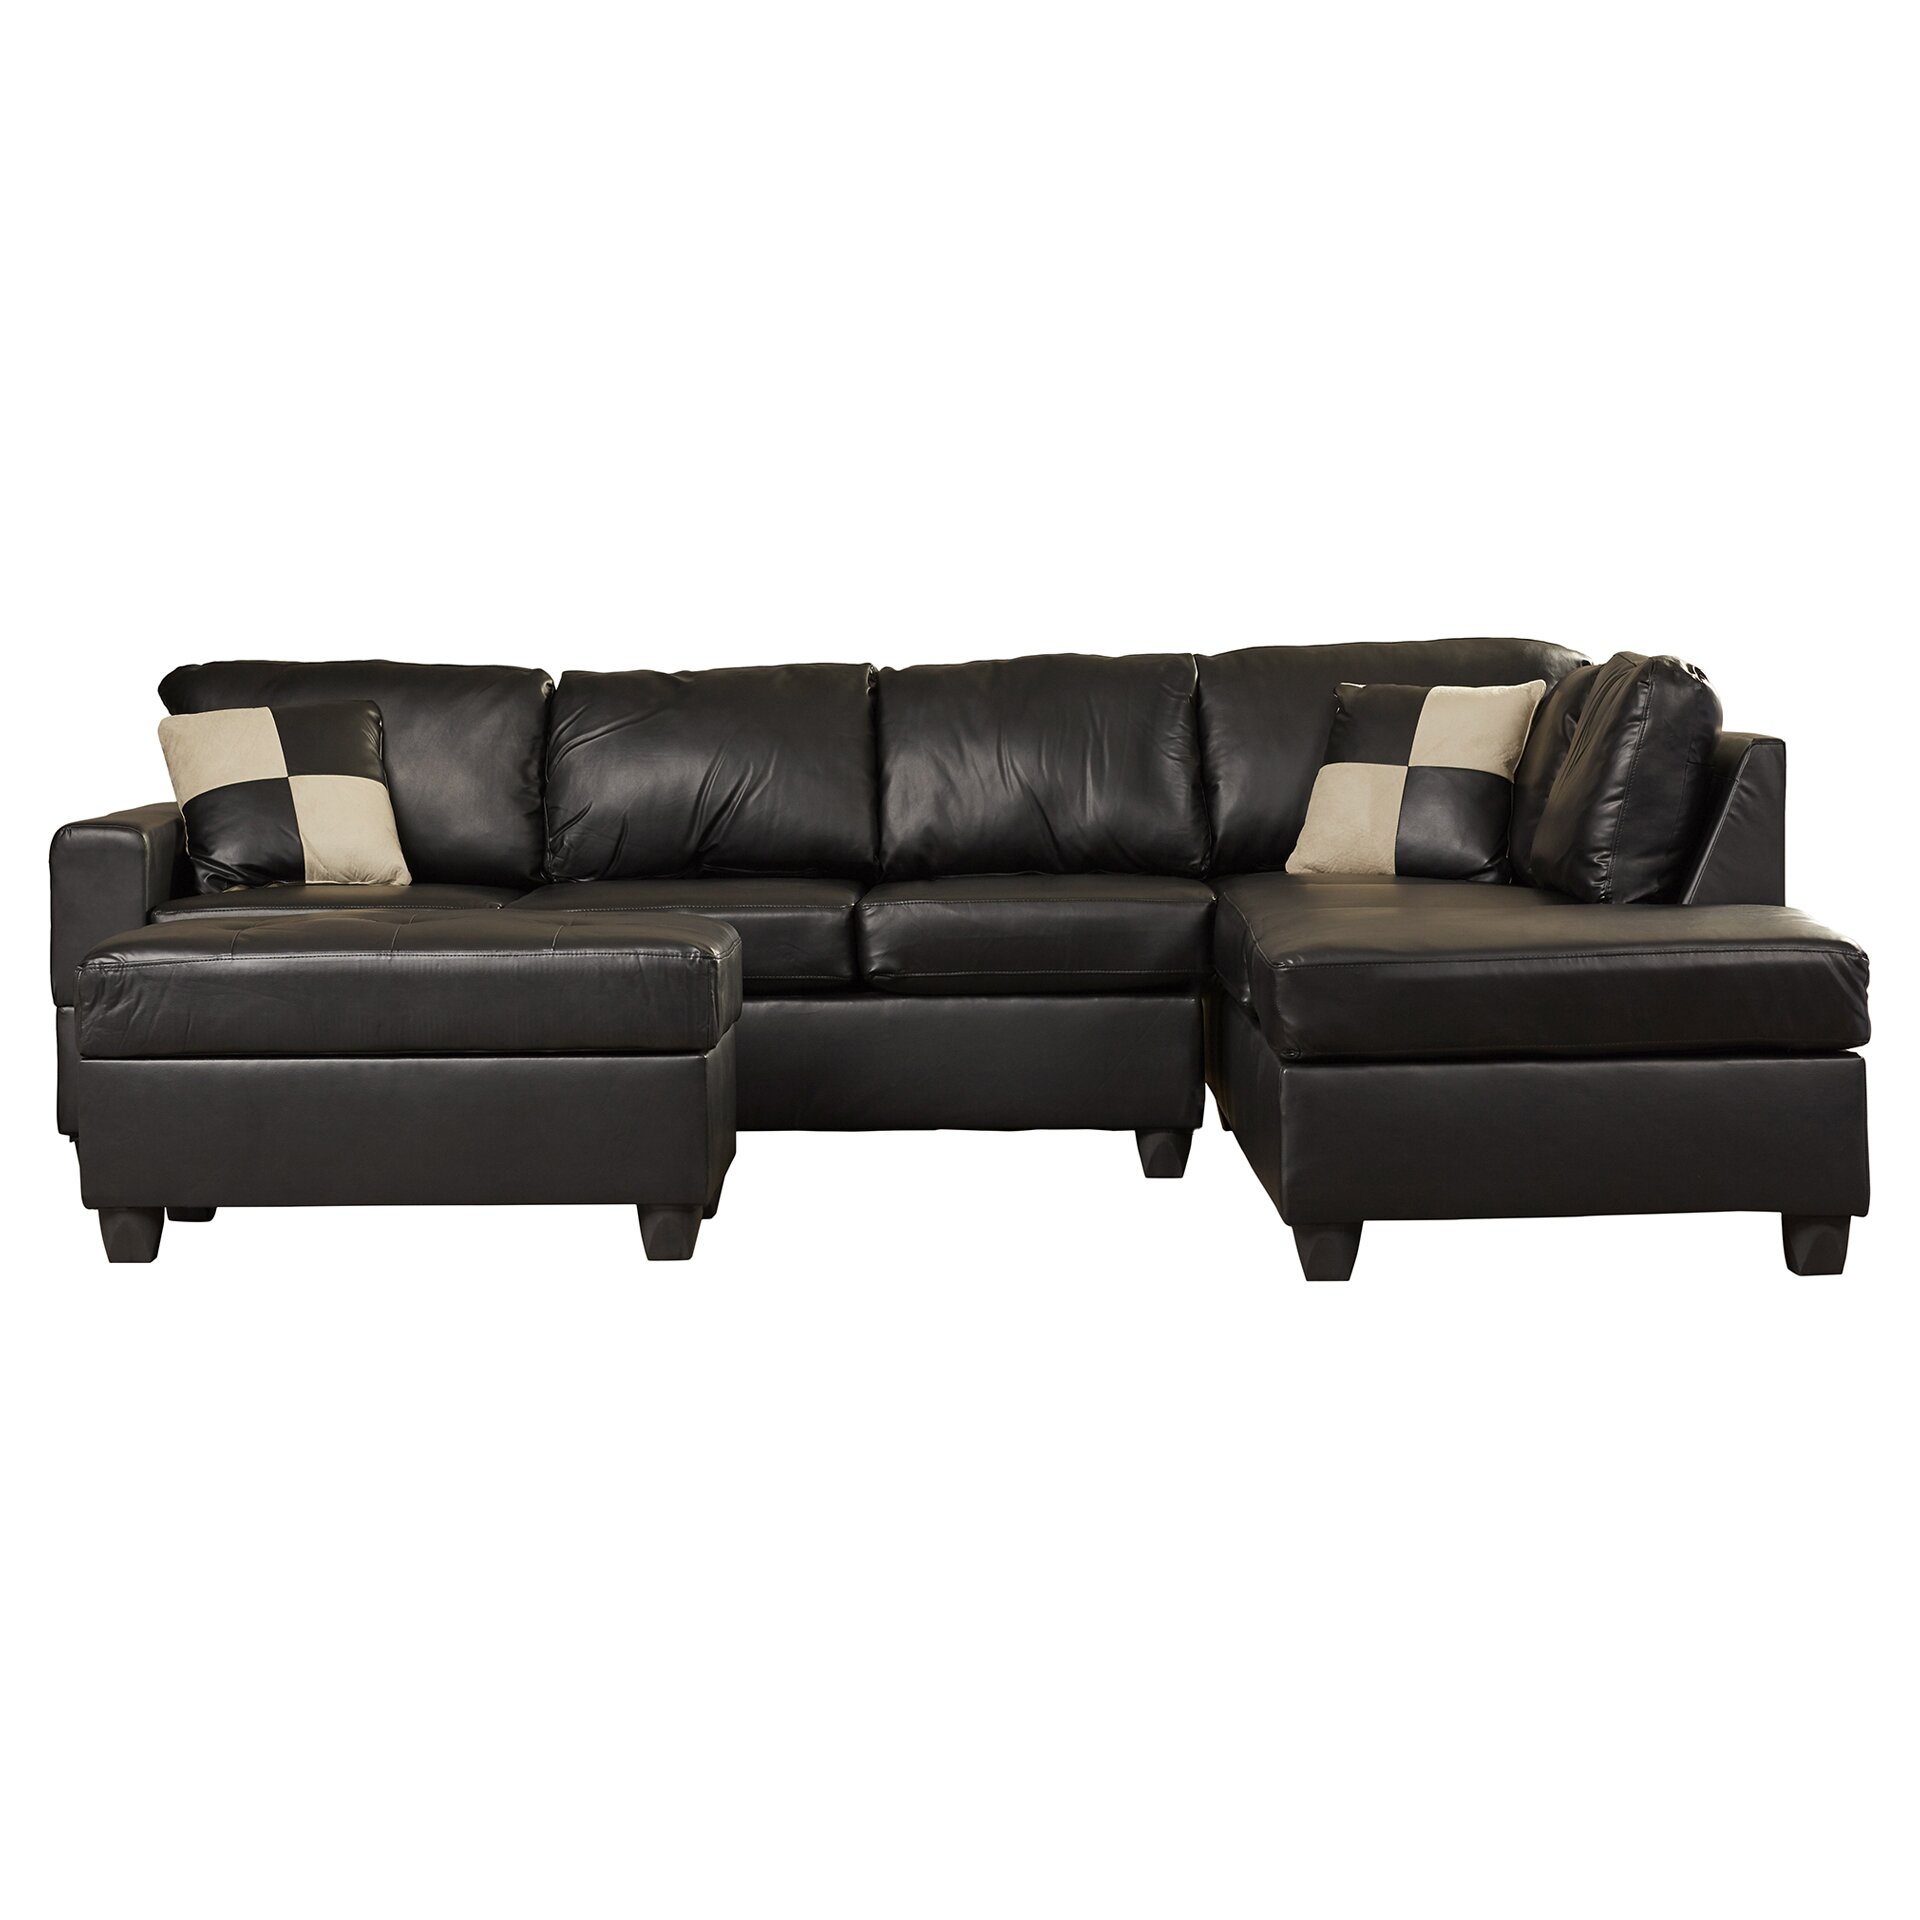 Century Leather Sofa Reviews picture on Andover Mills® Corporate 5 Piece Bonded Bonded Leather Sectional Sofa ANDO4344 with Century Leather Sofa Reviews, sofa 9e4502a743dfacc78c1a9f8c14506b60